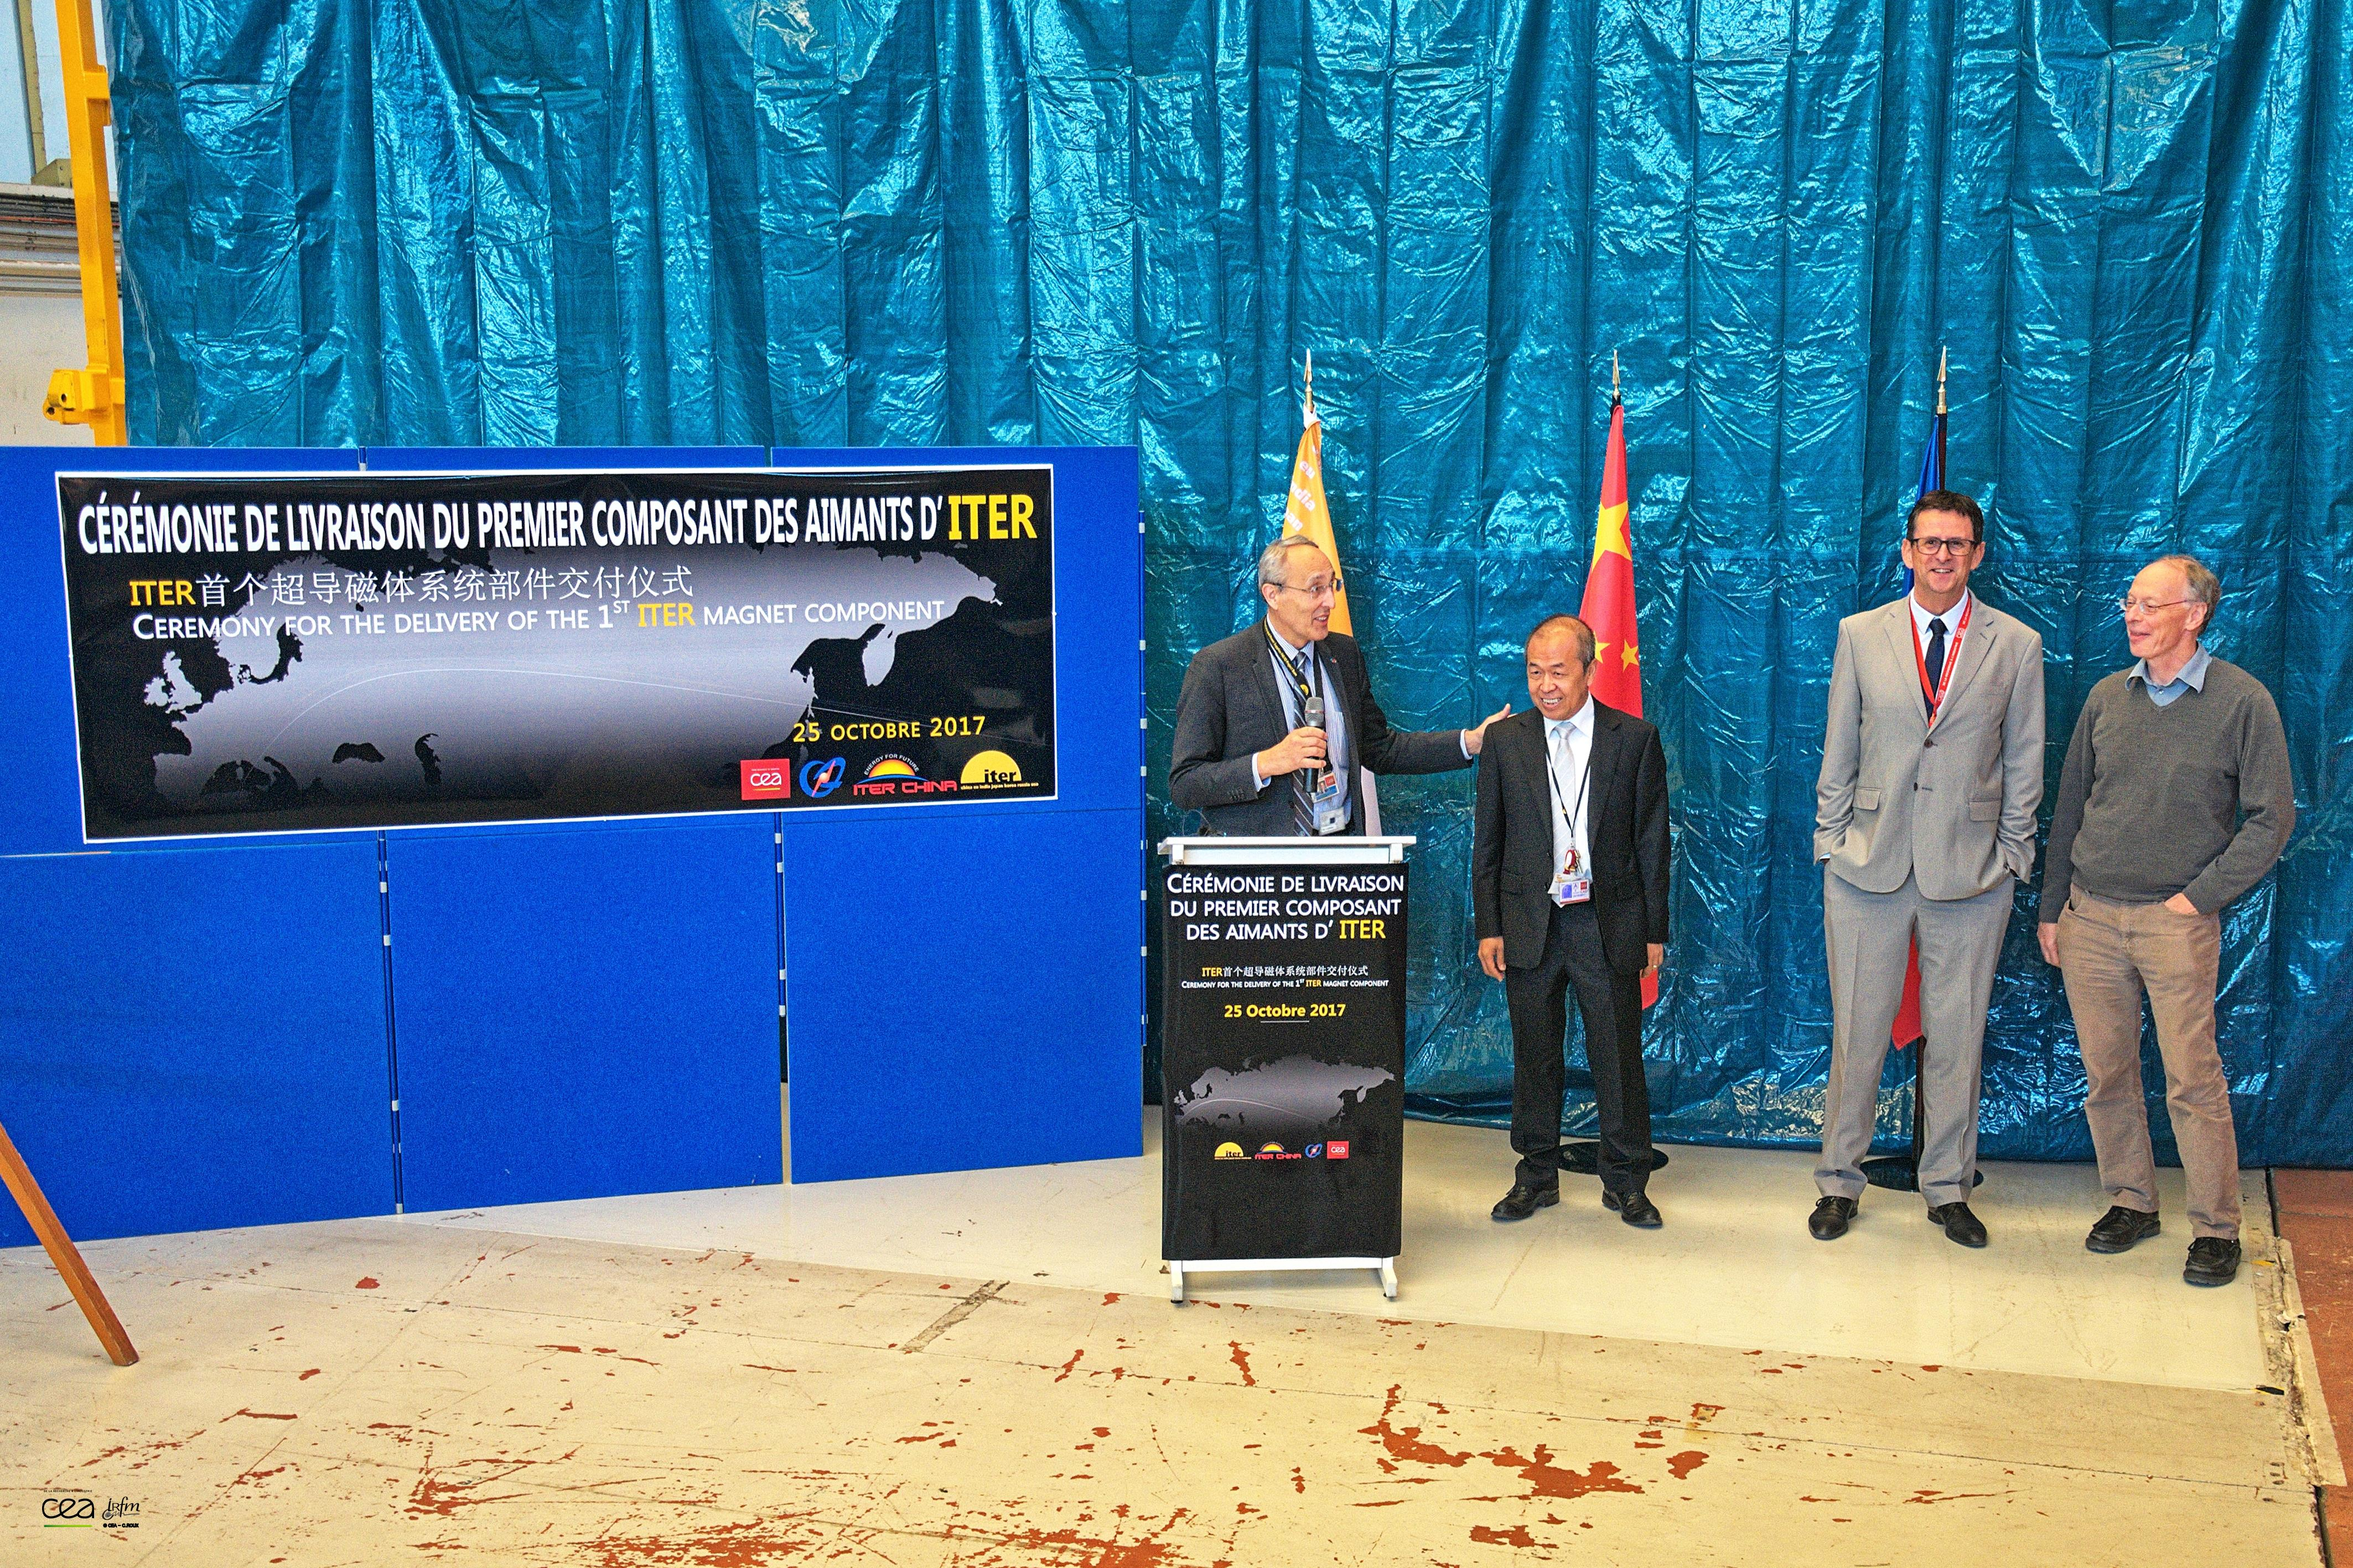 1st ITER Magnet Component Arrives in Cadarache